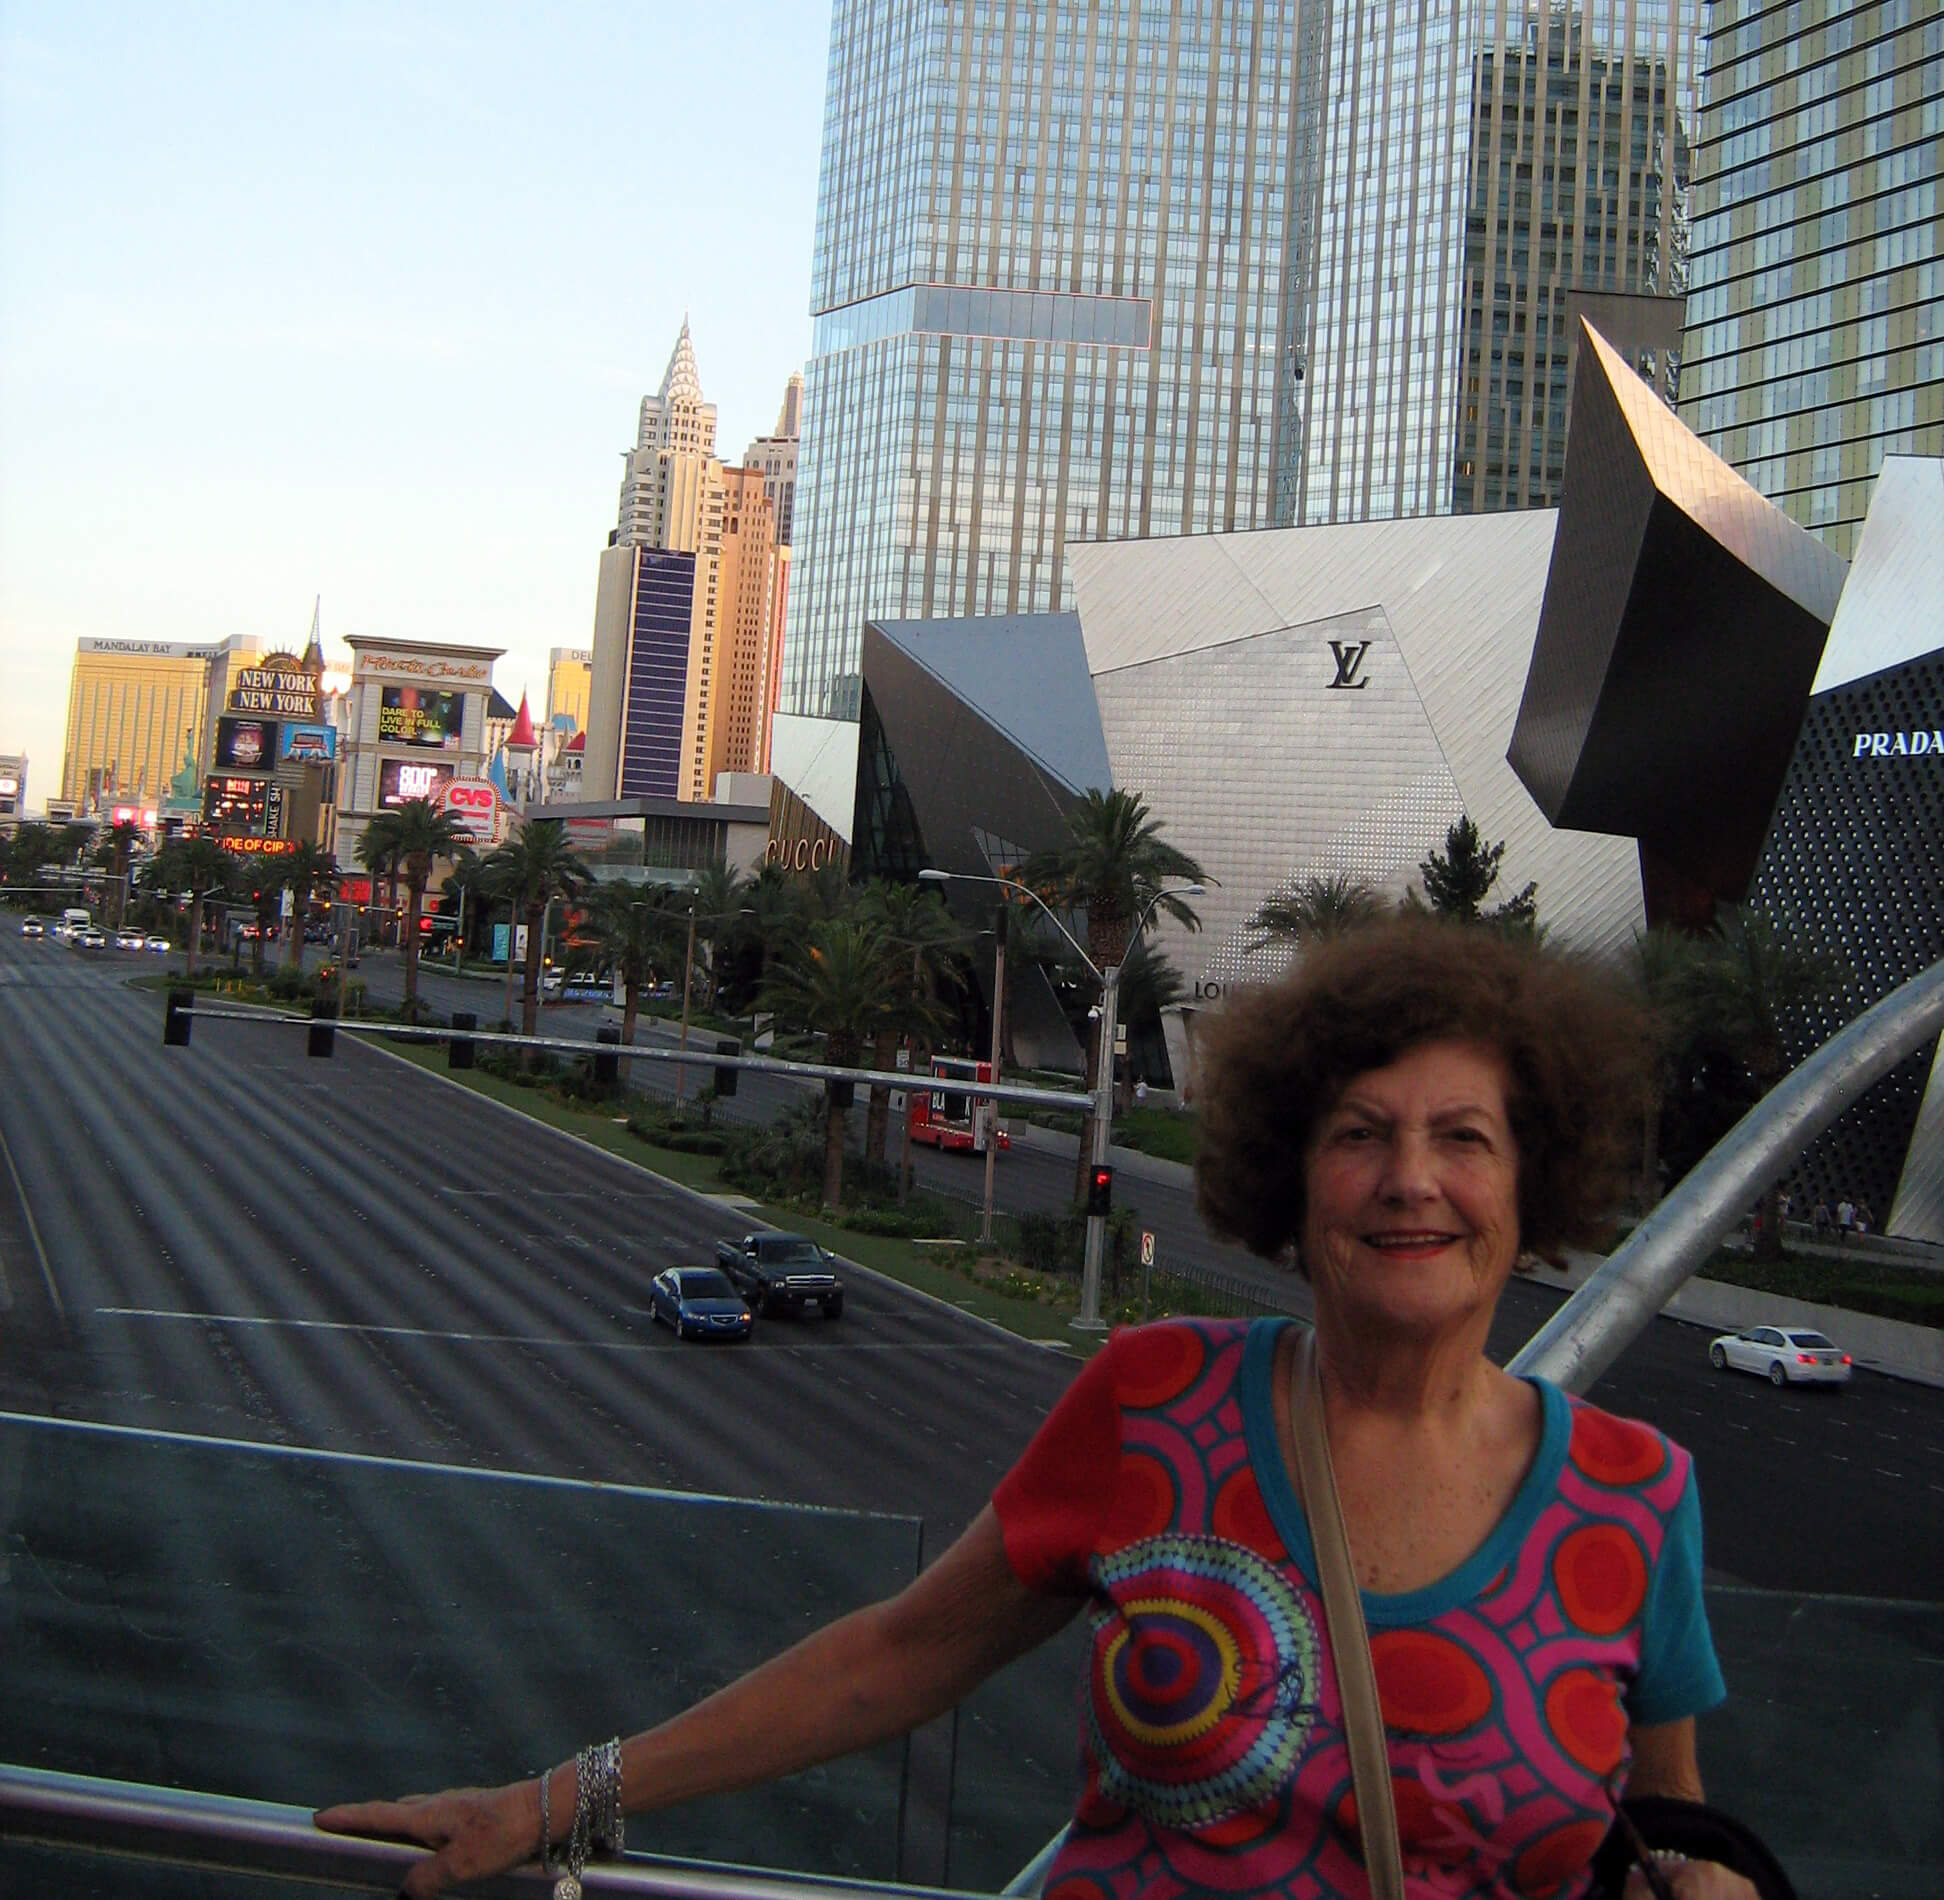 My mother Ana in Las Vegas, USA, aged 80